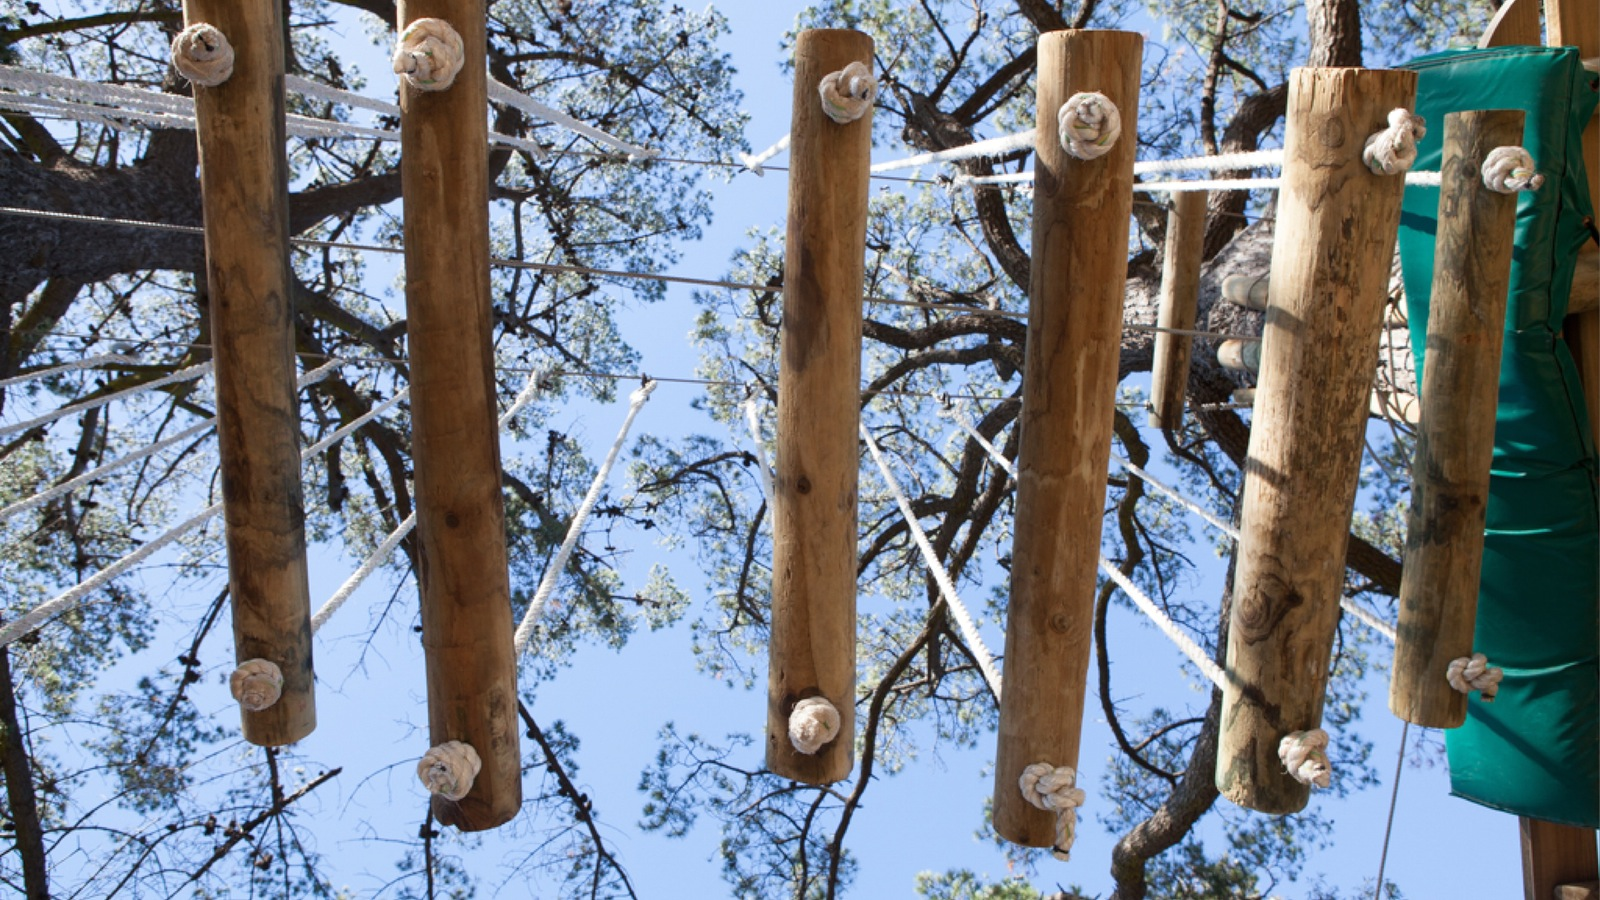 Image: High Ropes Course